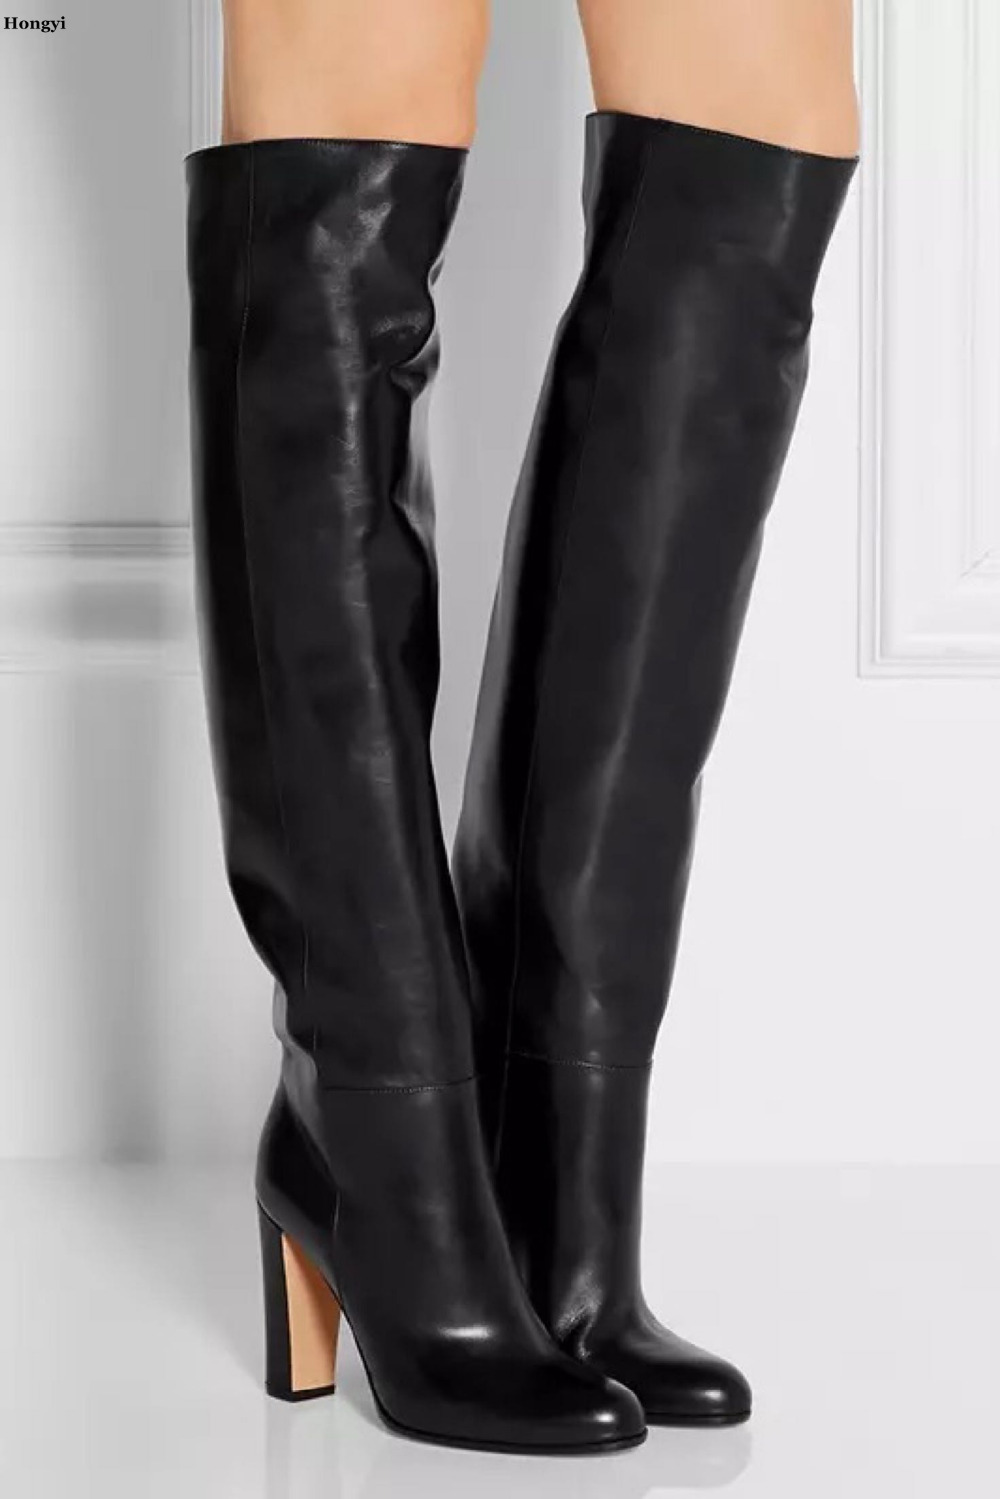 Autumn Winter Newest Black Leather Boots Woman Round Toe -8126